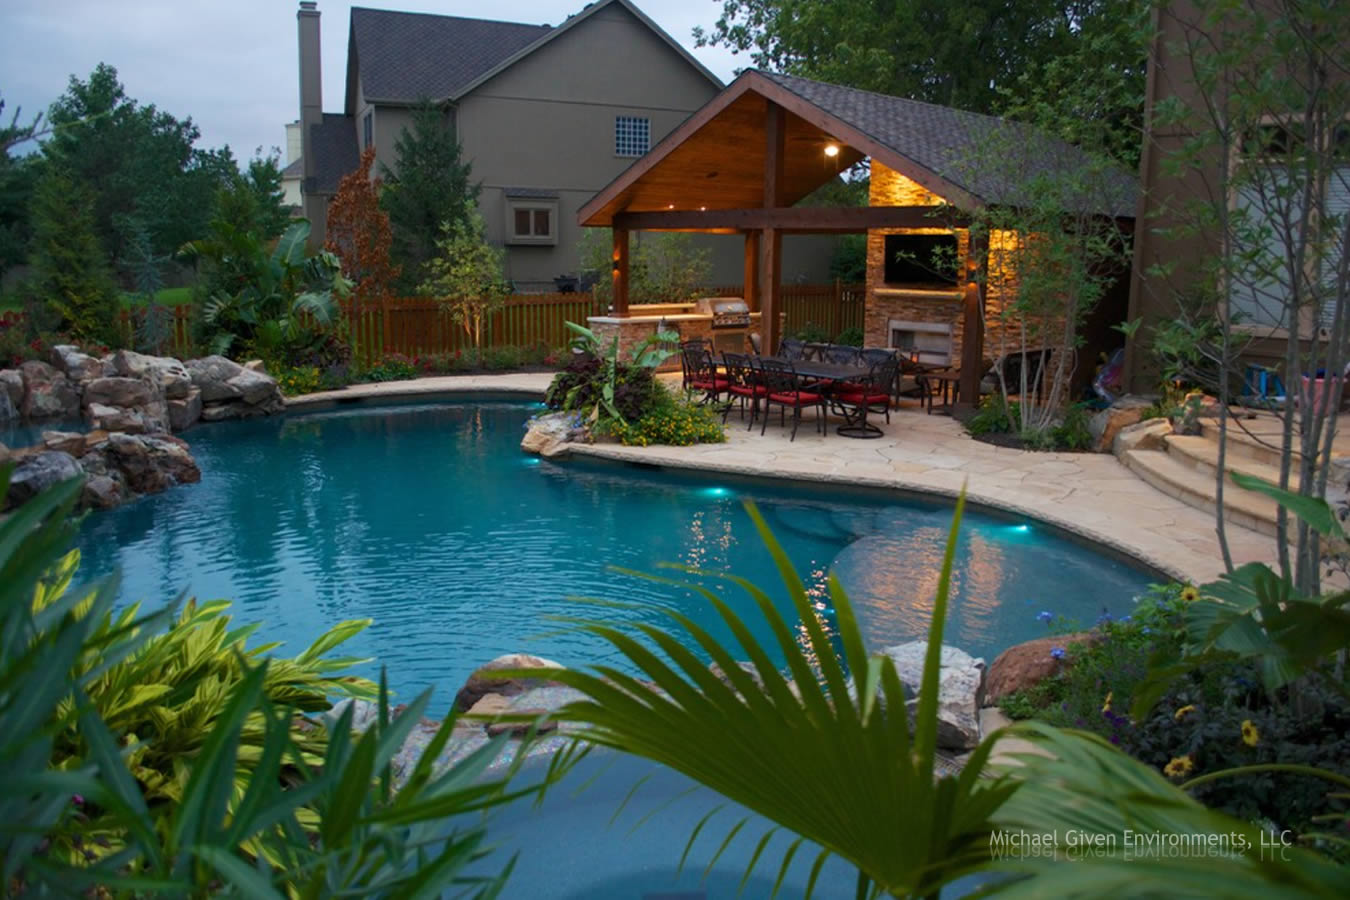 Backyard oasis gallery by michael given environments llc for Garden city pool jobs